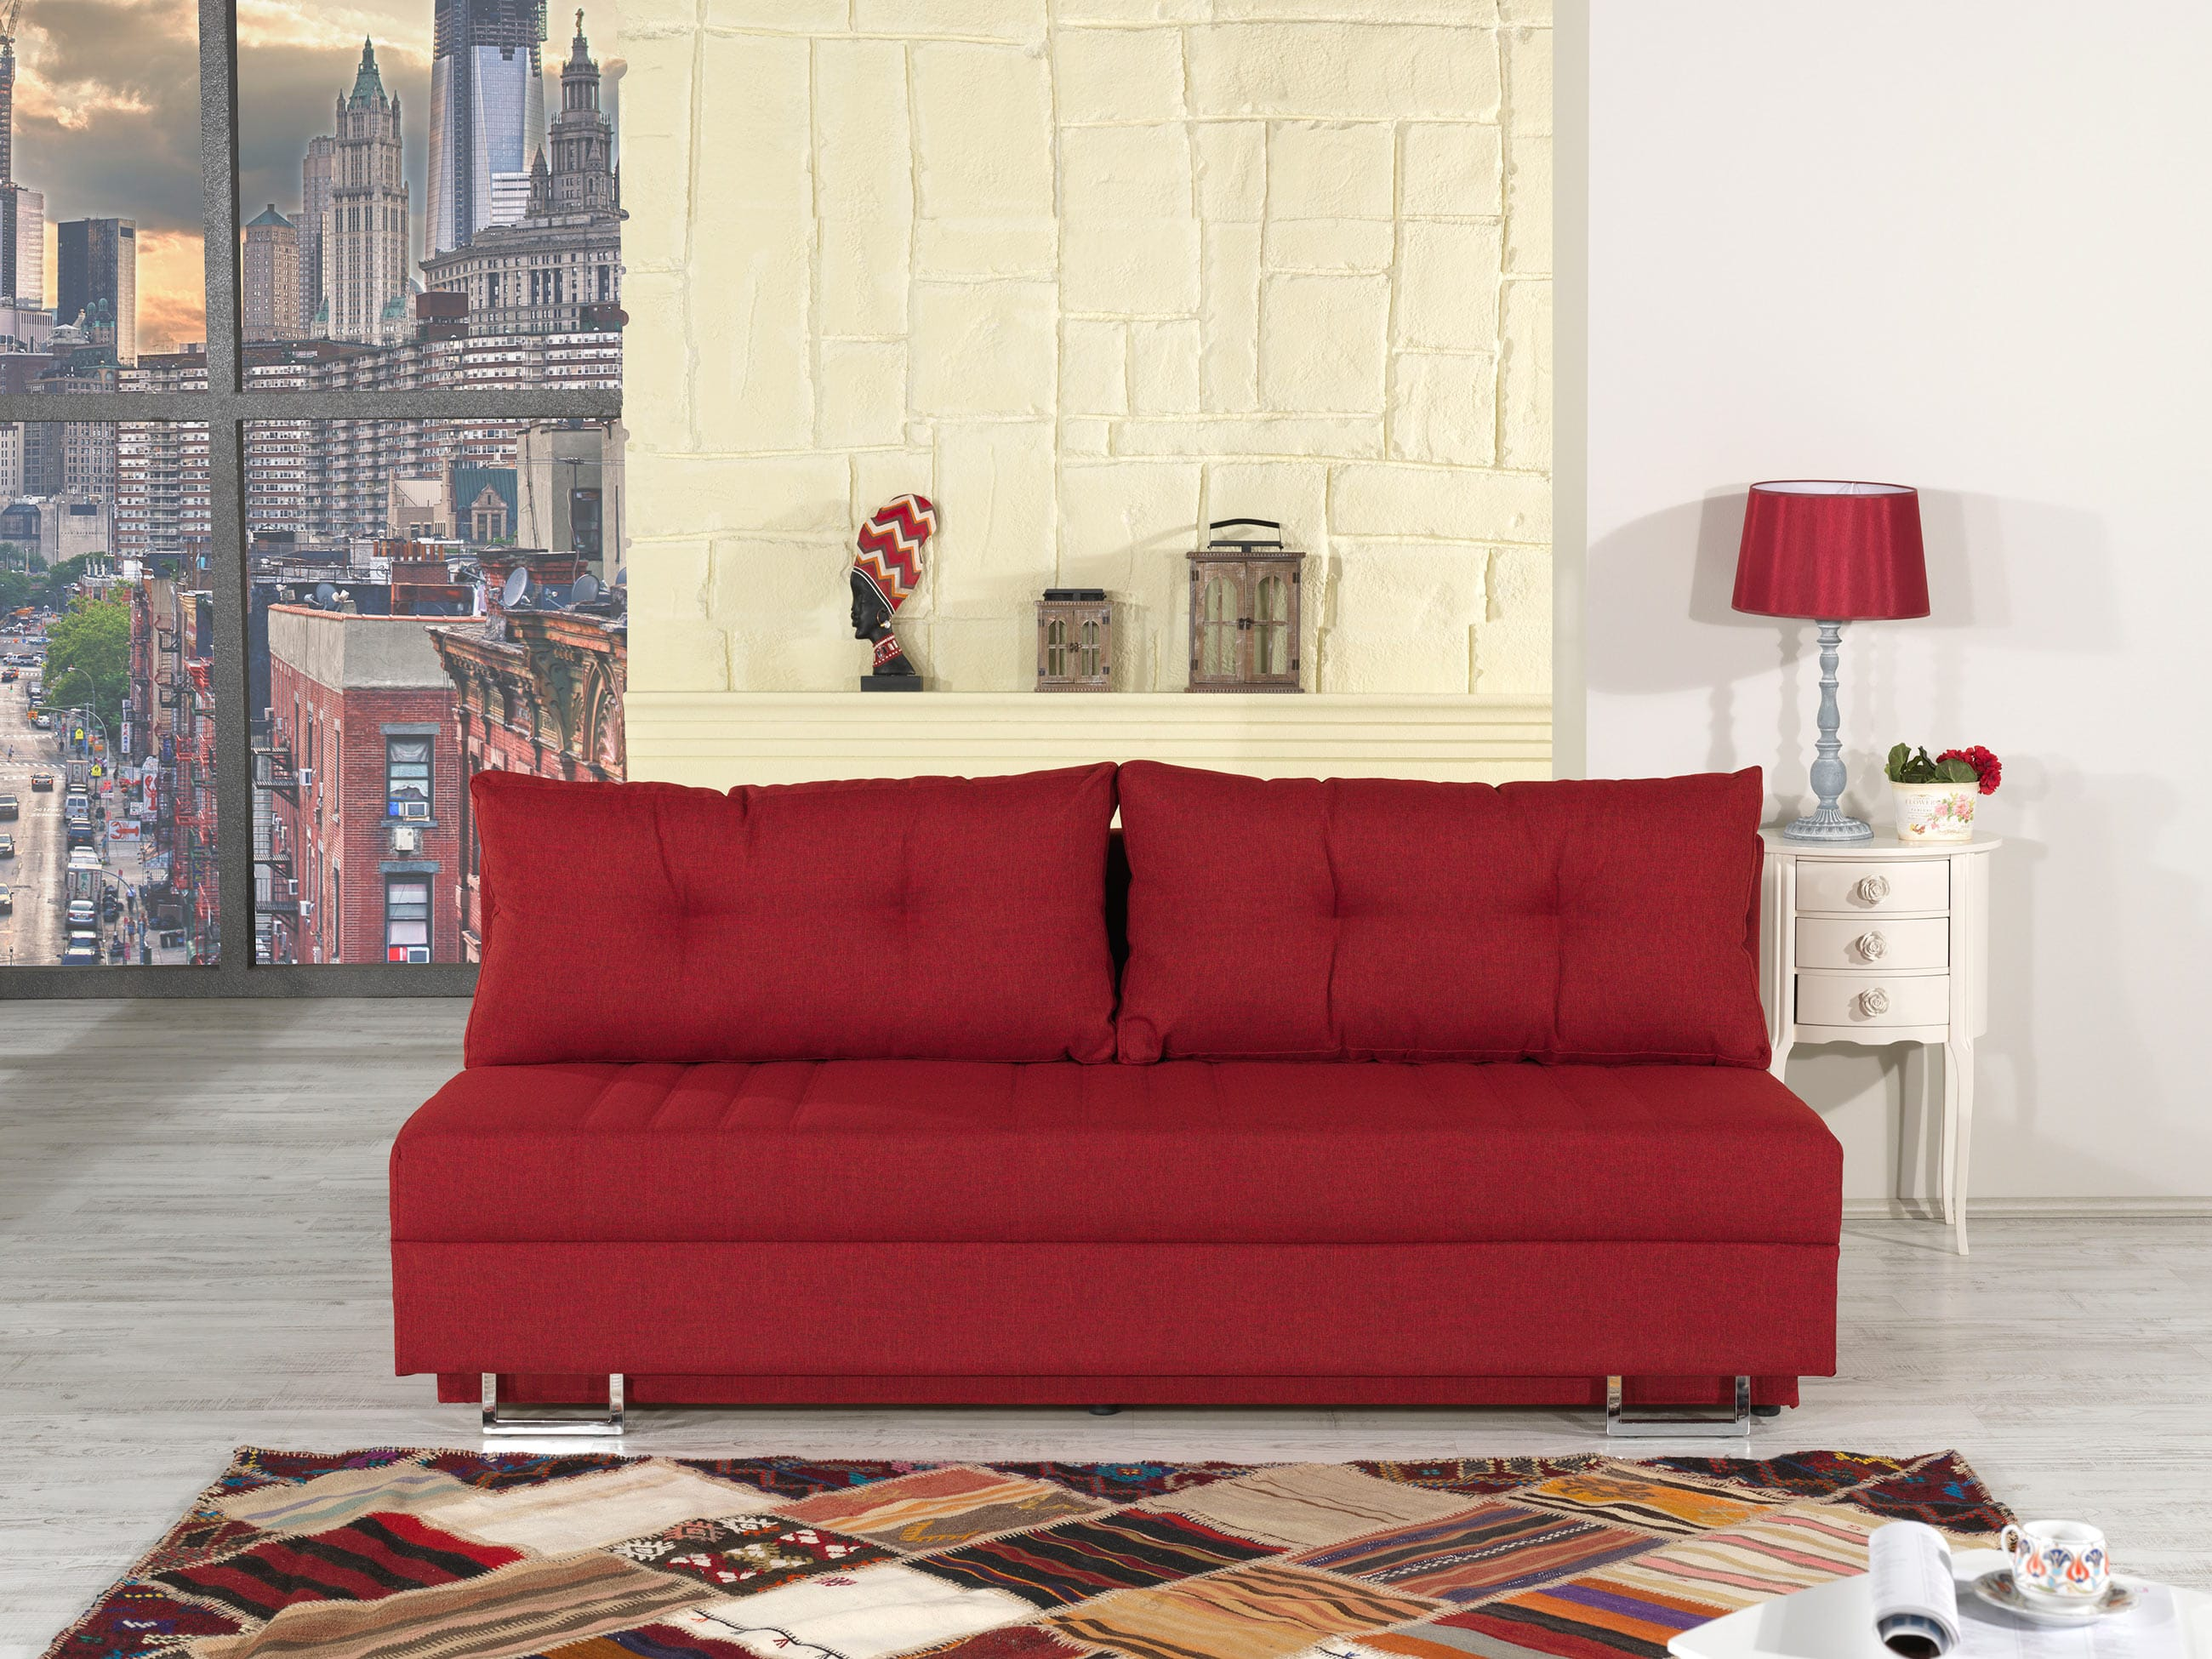 Flex Motion Red Queen Sofa Bed w Storage by Casamode